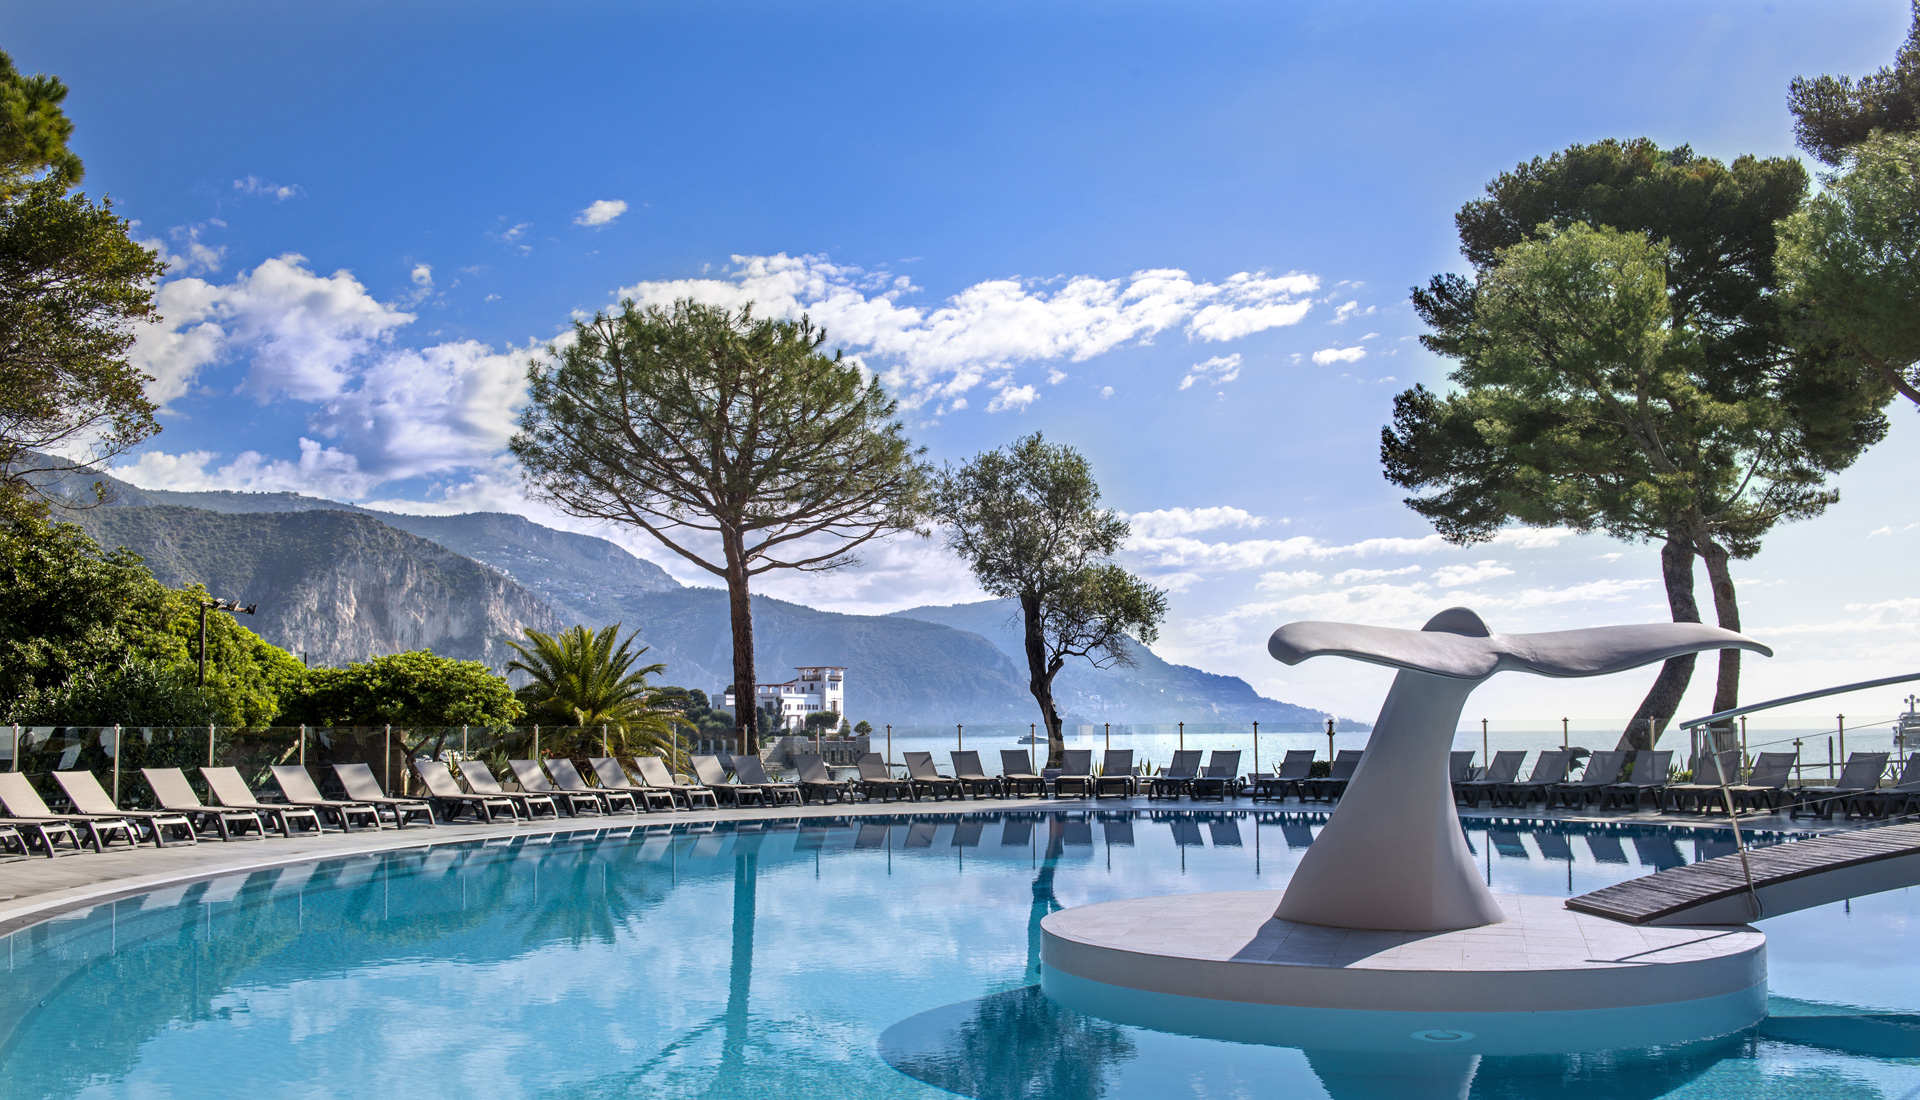 You're 3 stars hotel club for your family holidays in the French Riviera